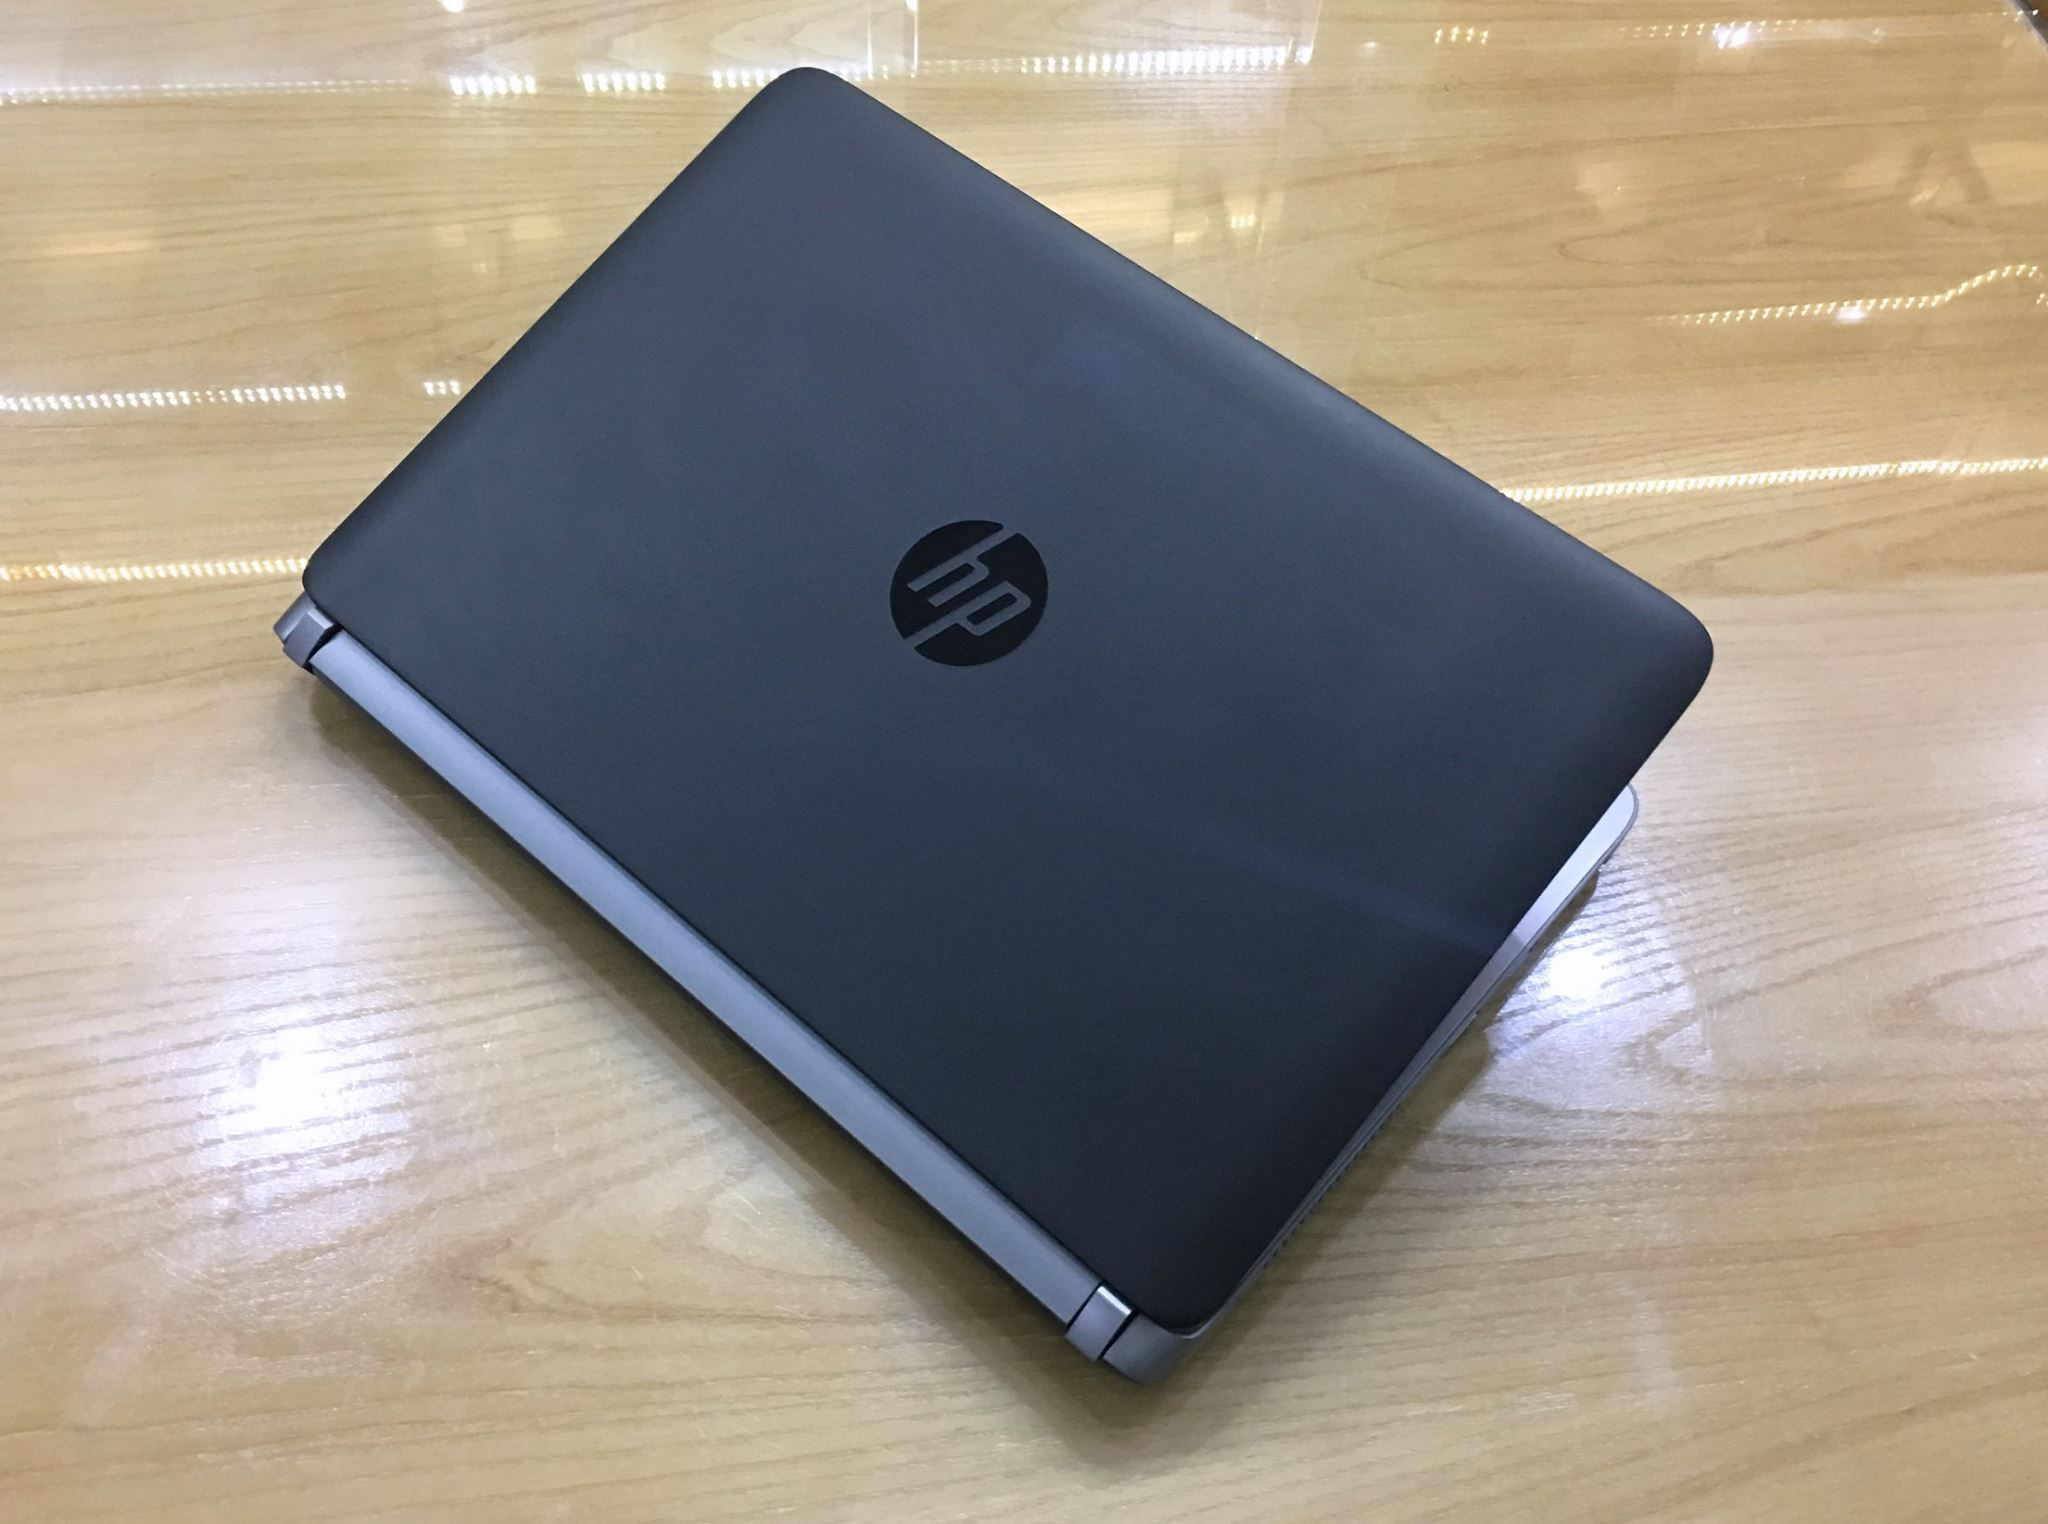 LAPTOP HP ELITEBOOK 430 G1-4.jpg